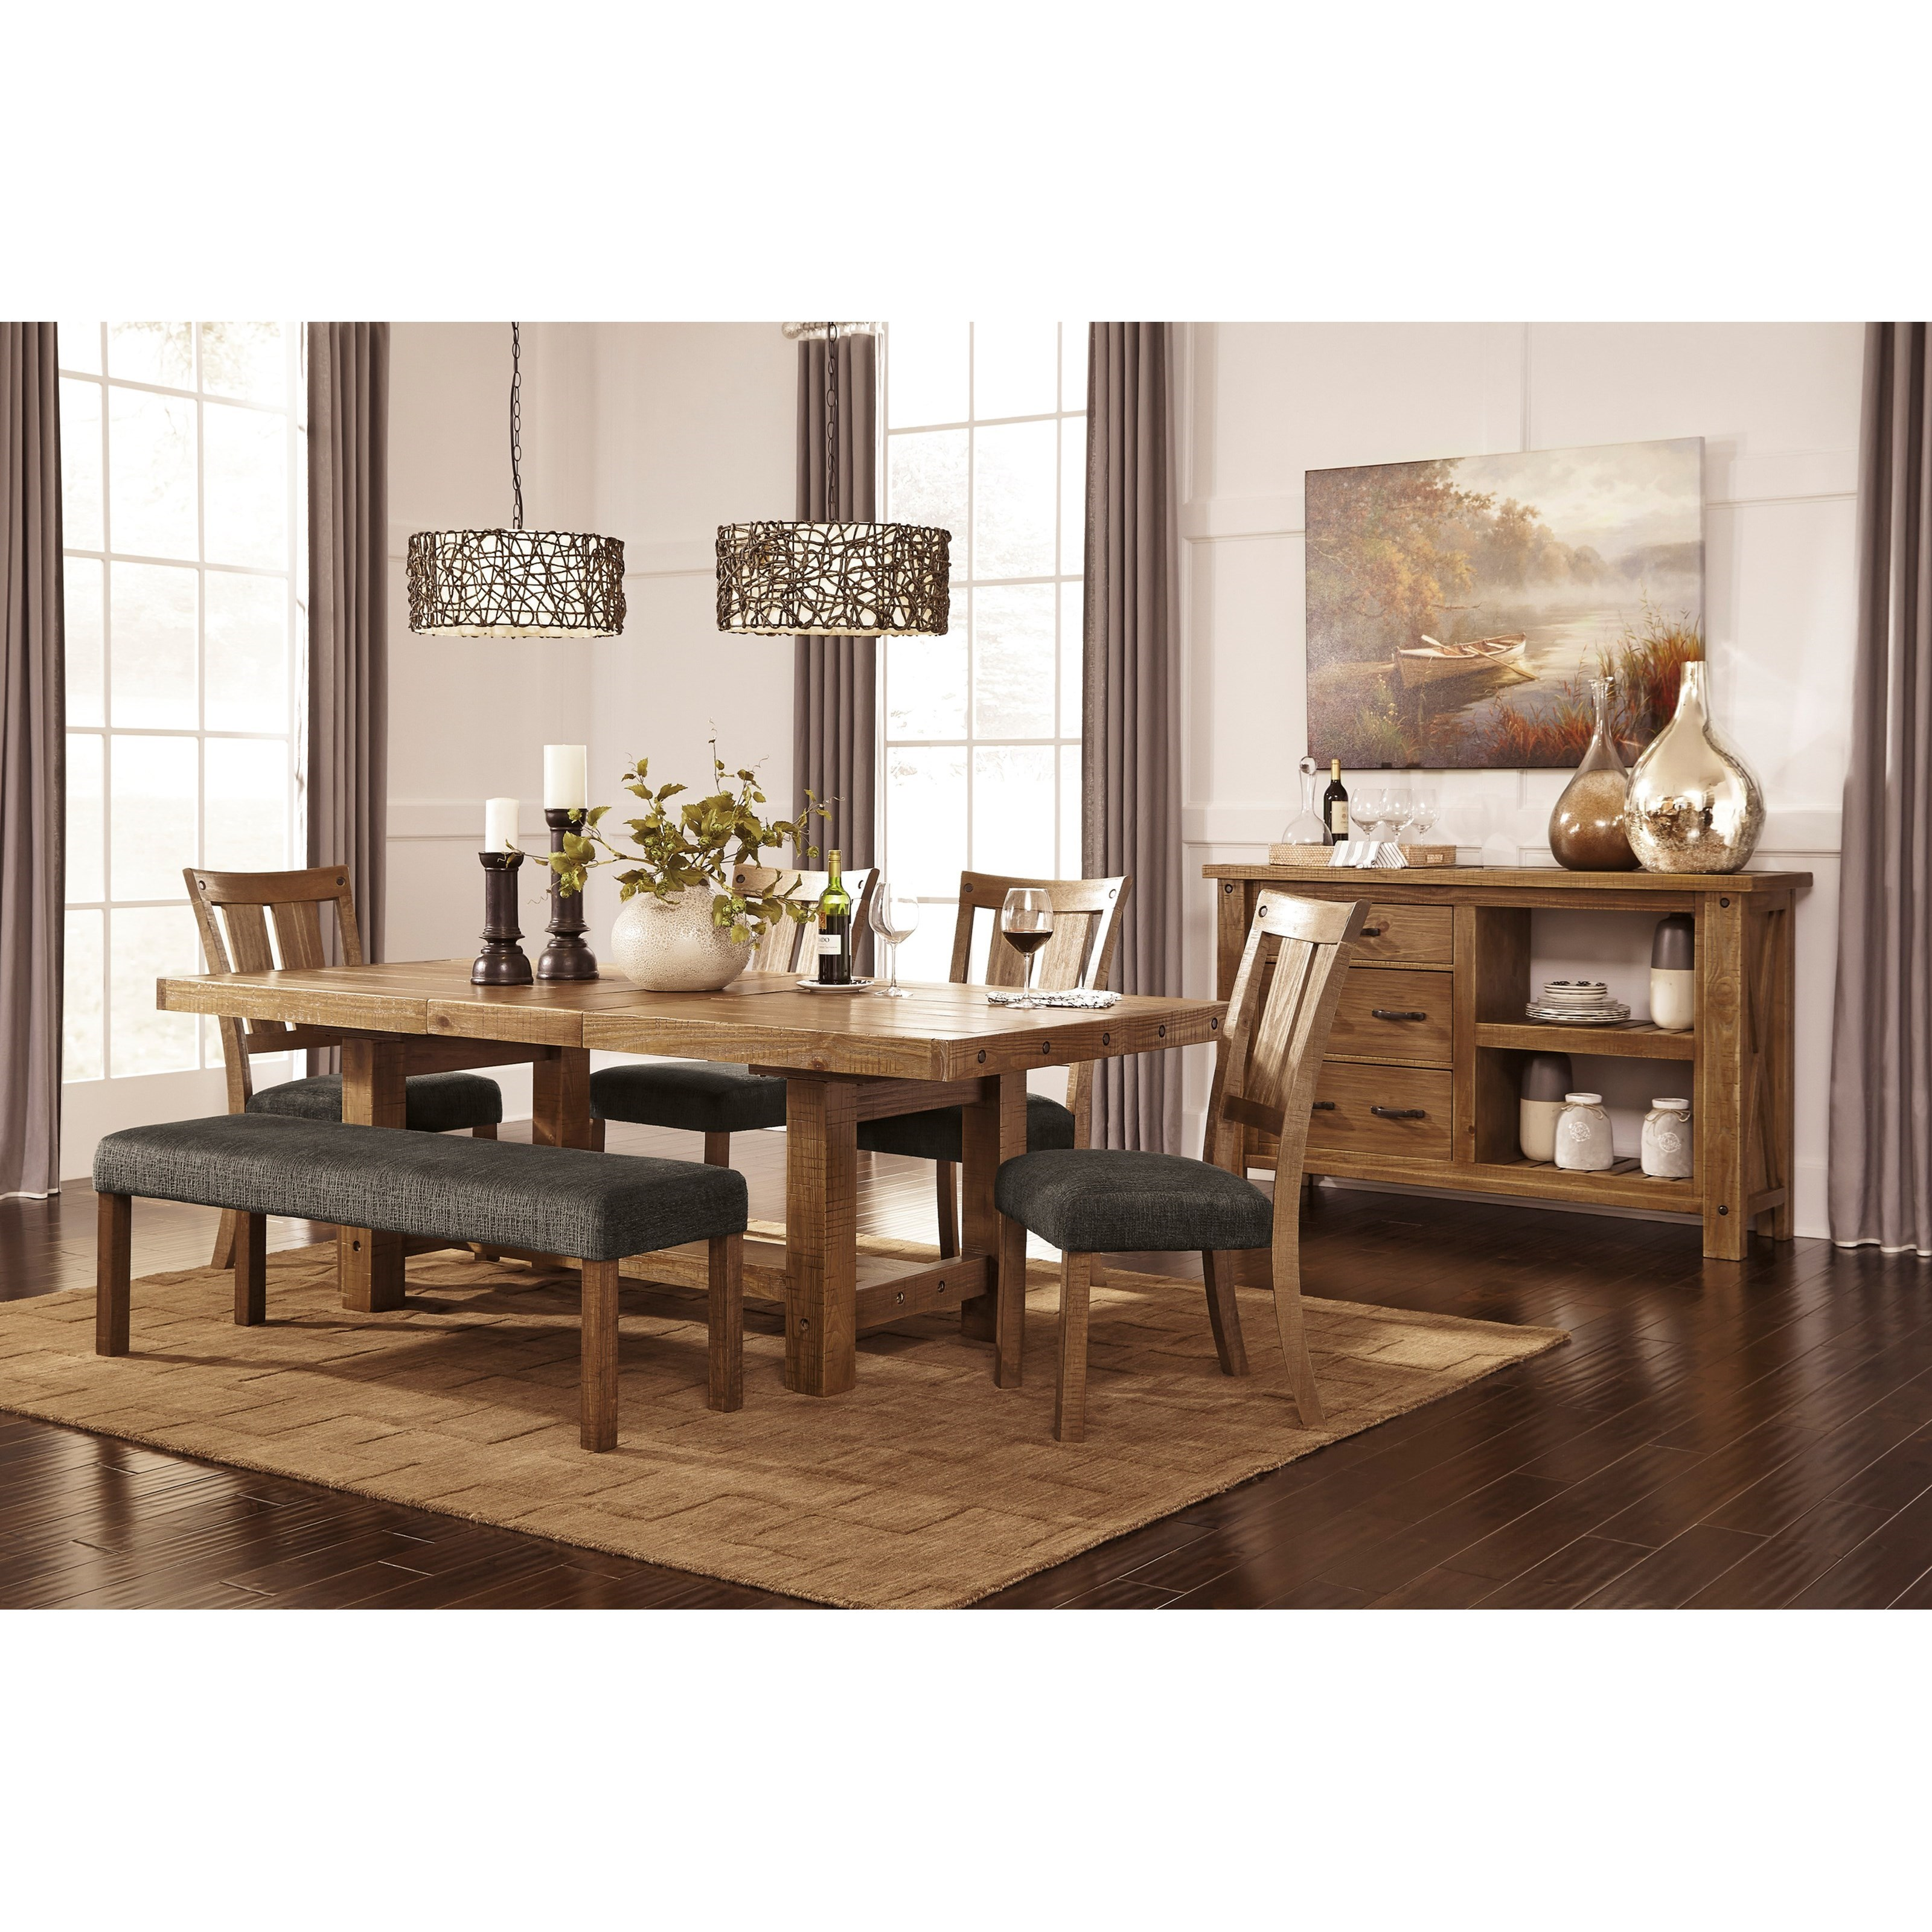 Ashley Signature Design Tamilo D714 45 Rectangle Dining